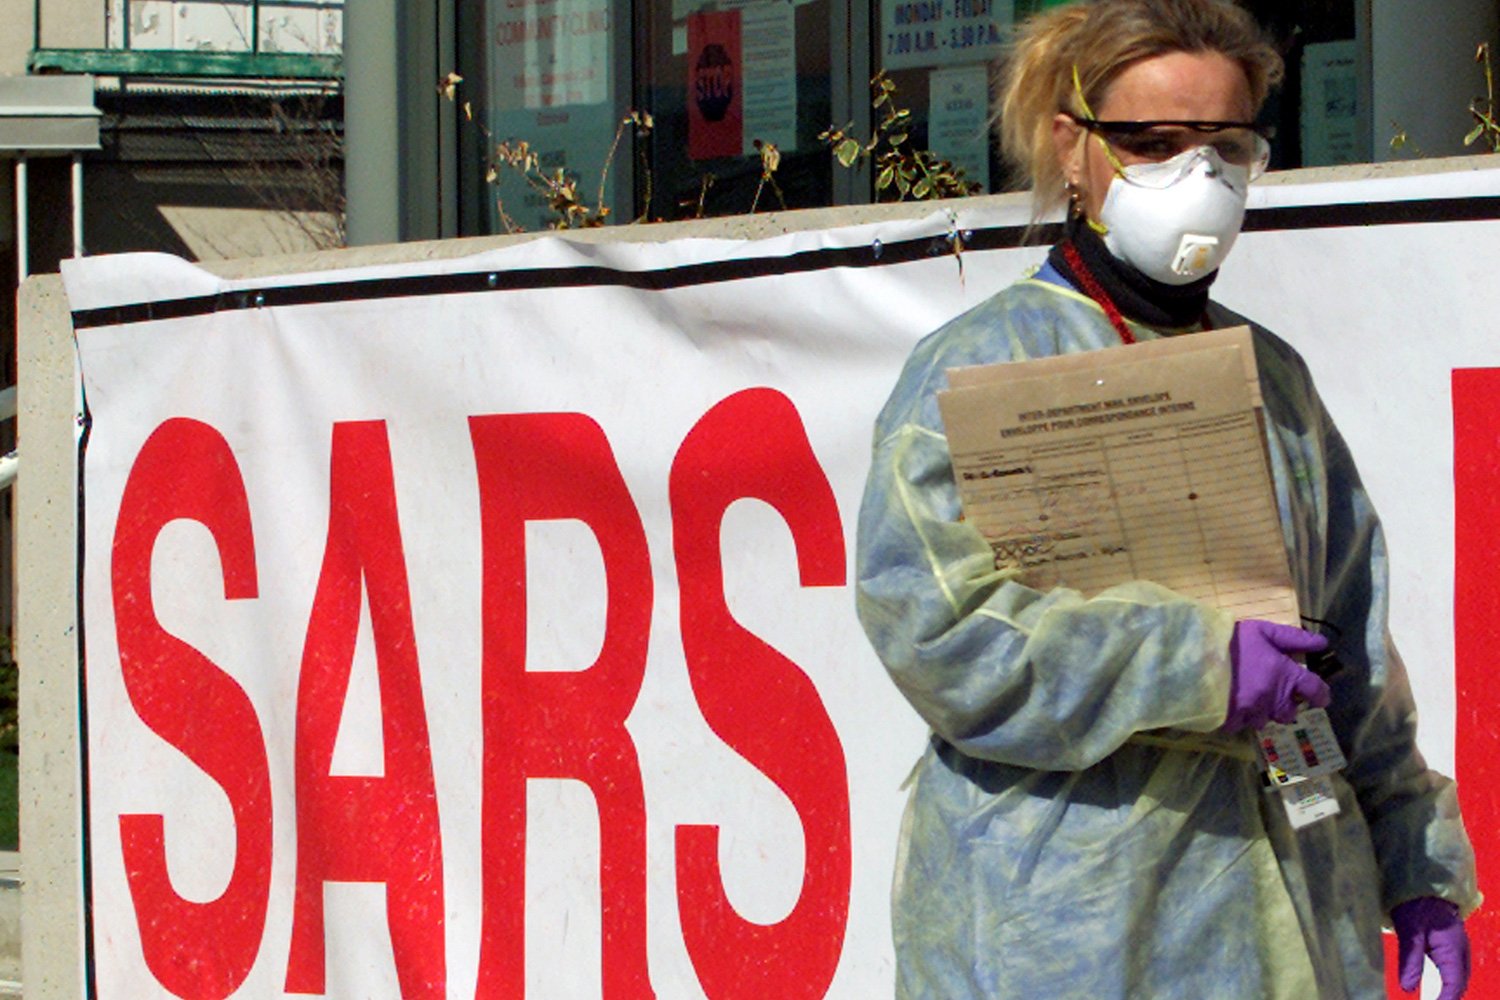 "The image shows a woman wearing full protective gear, including eye protection and a surgical mask in front of a hospital adorned with a huge sign that says ""SARS"" in bright red letters."